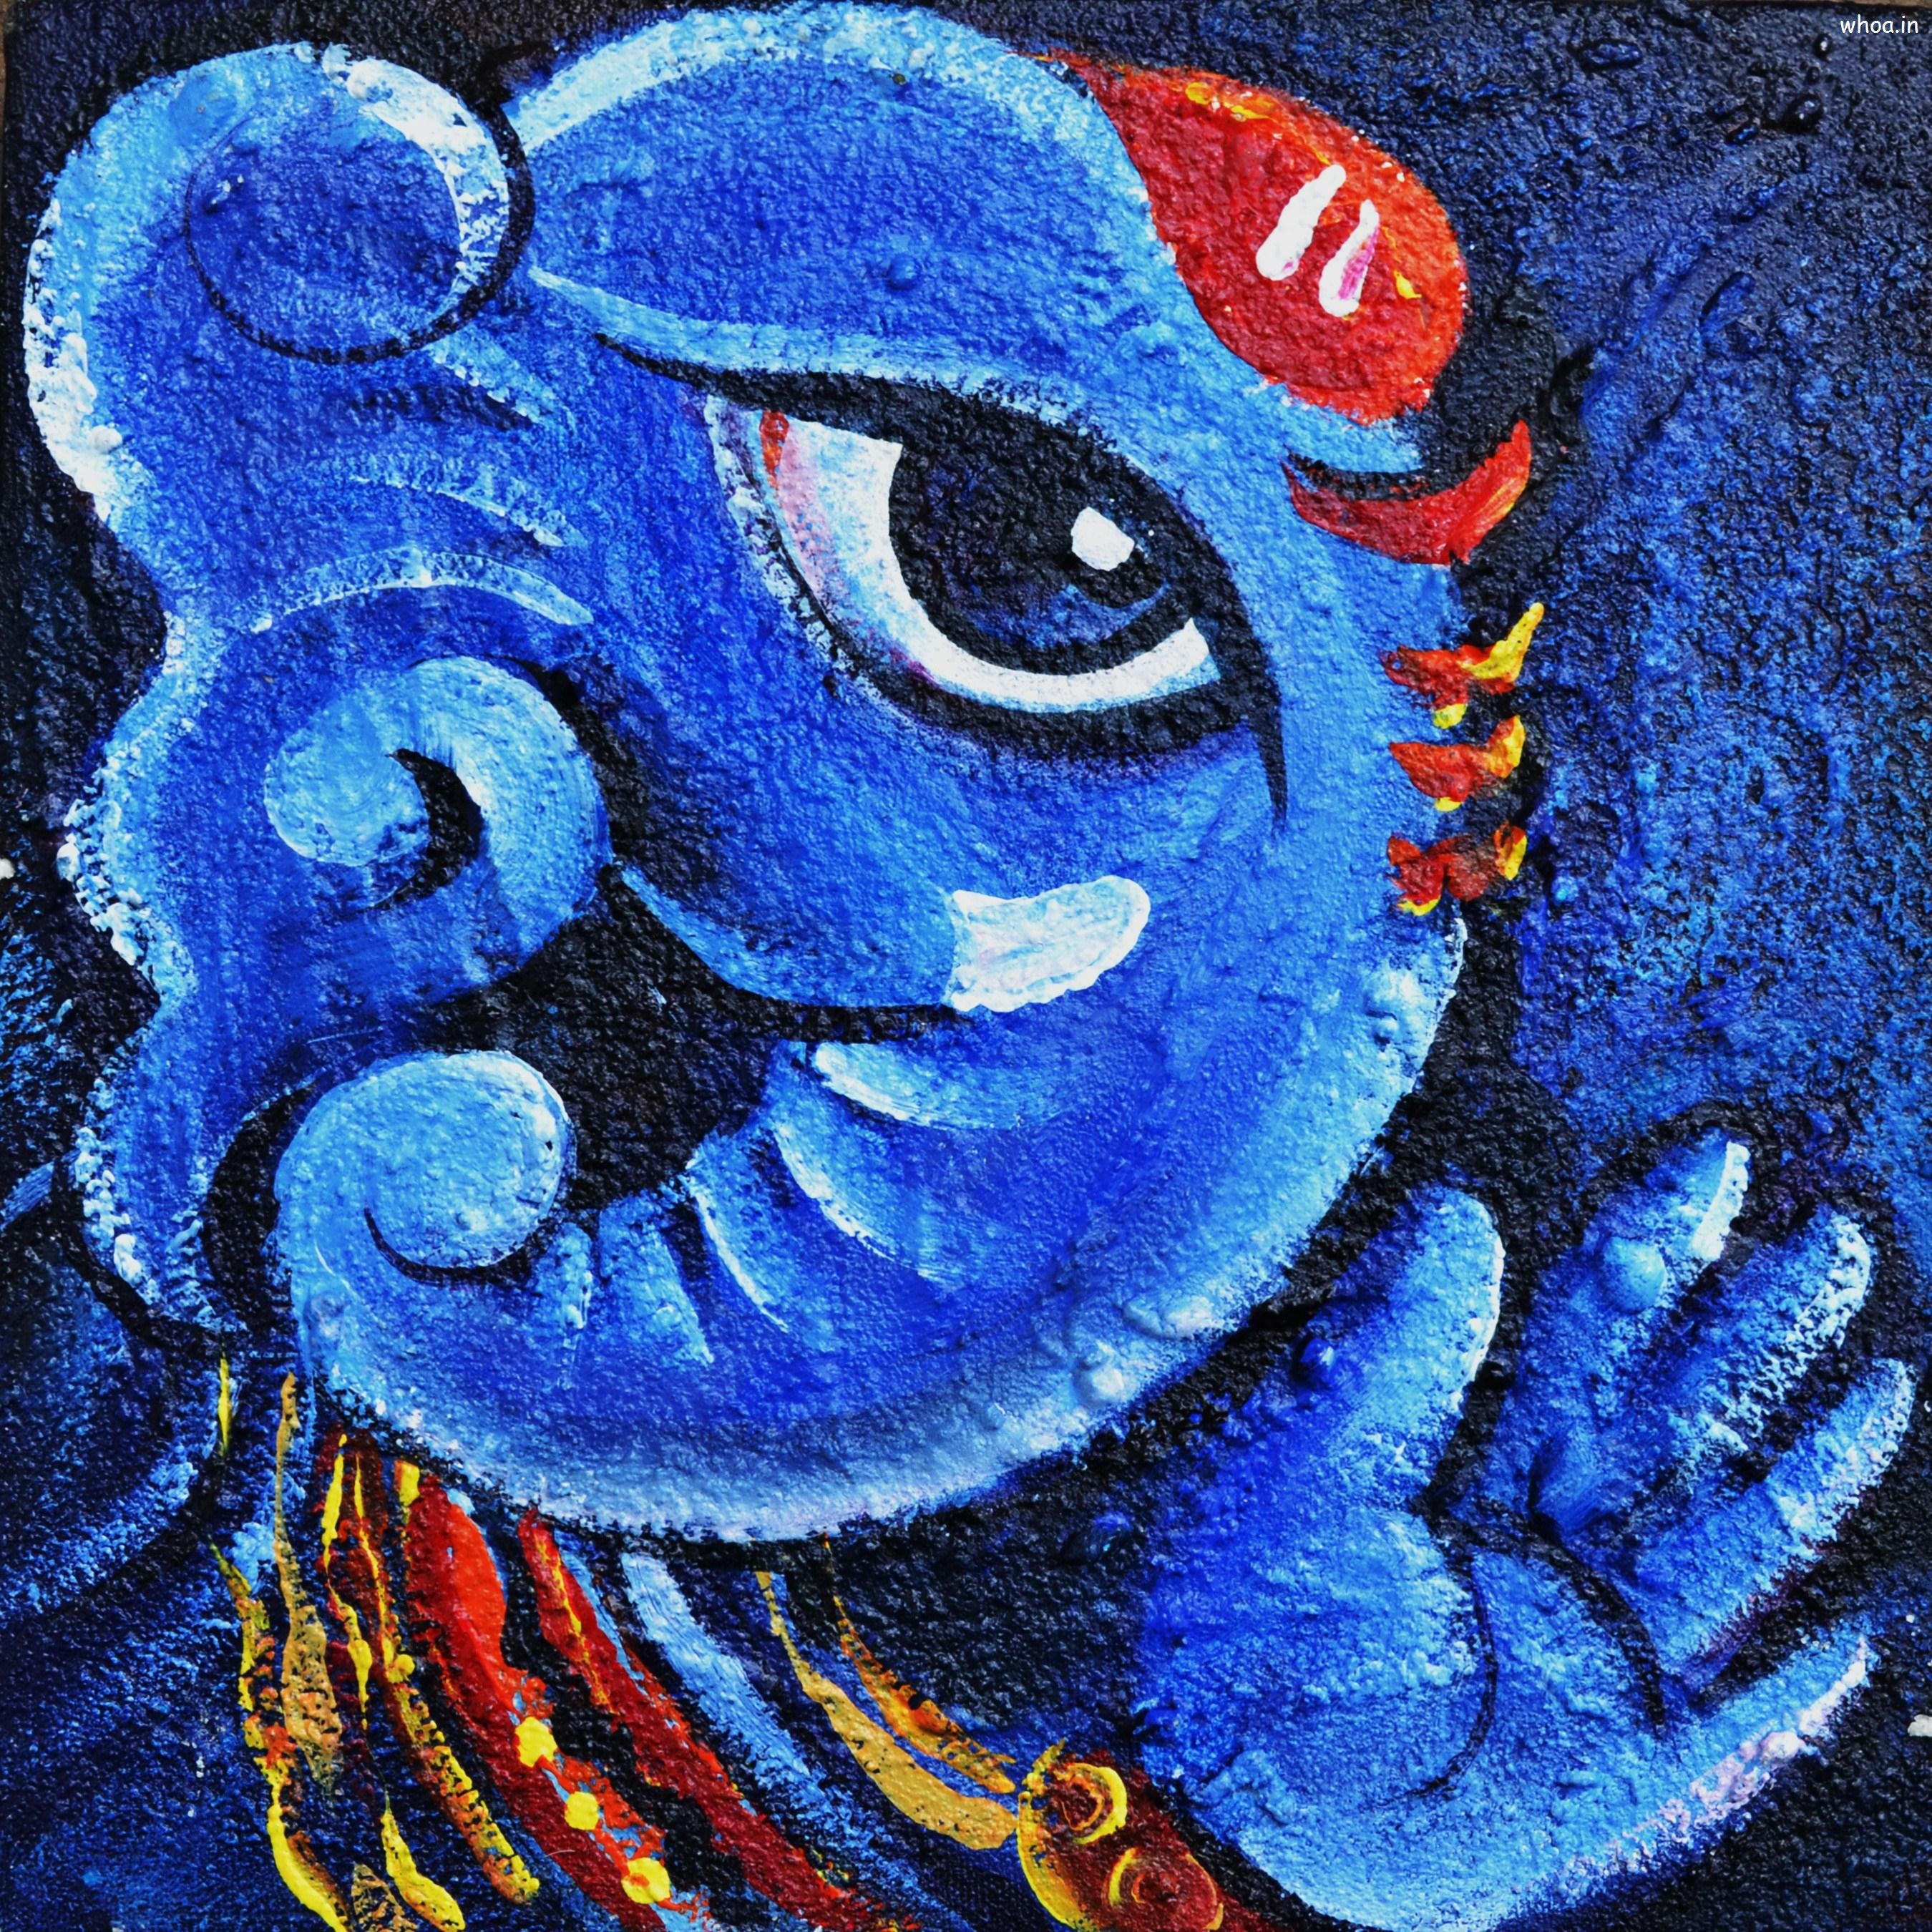 Lord ganesha multi color painting hd image - Download